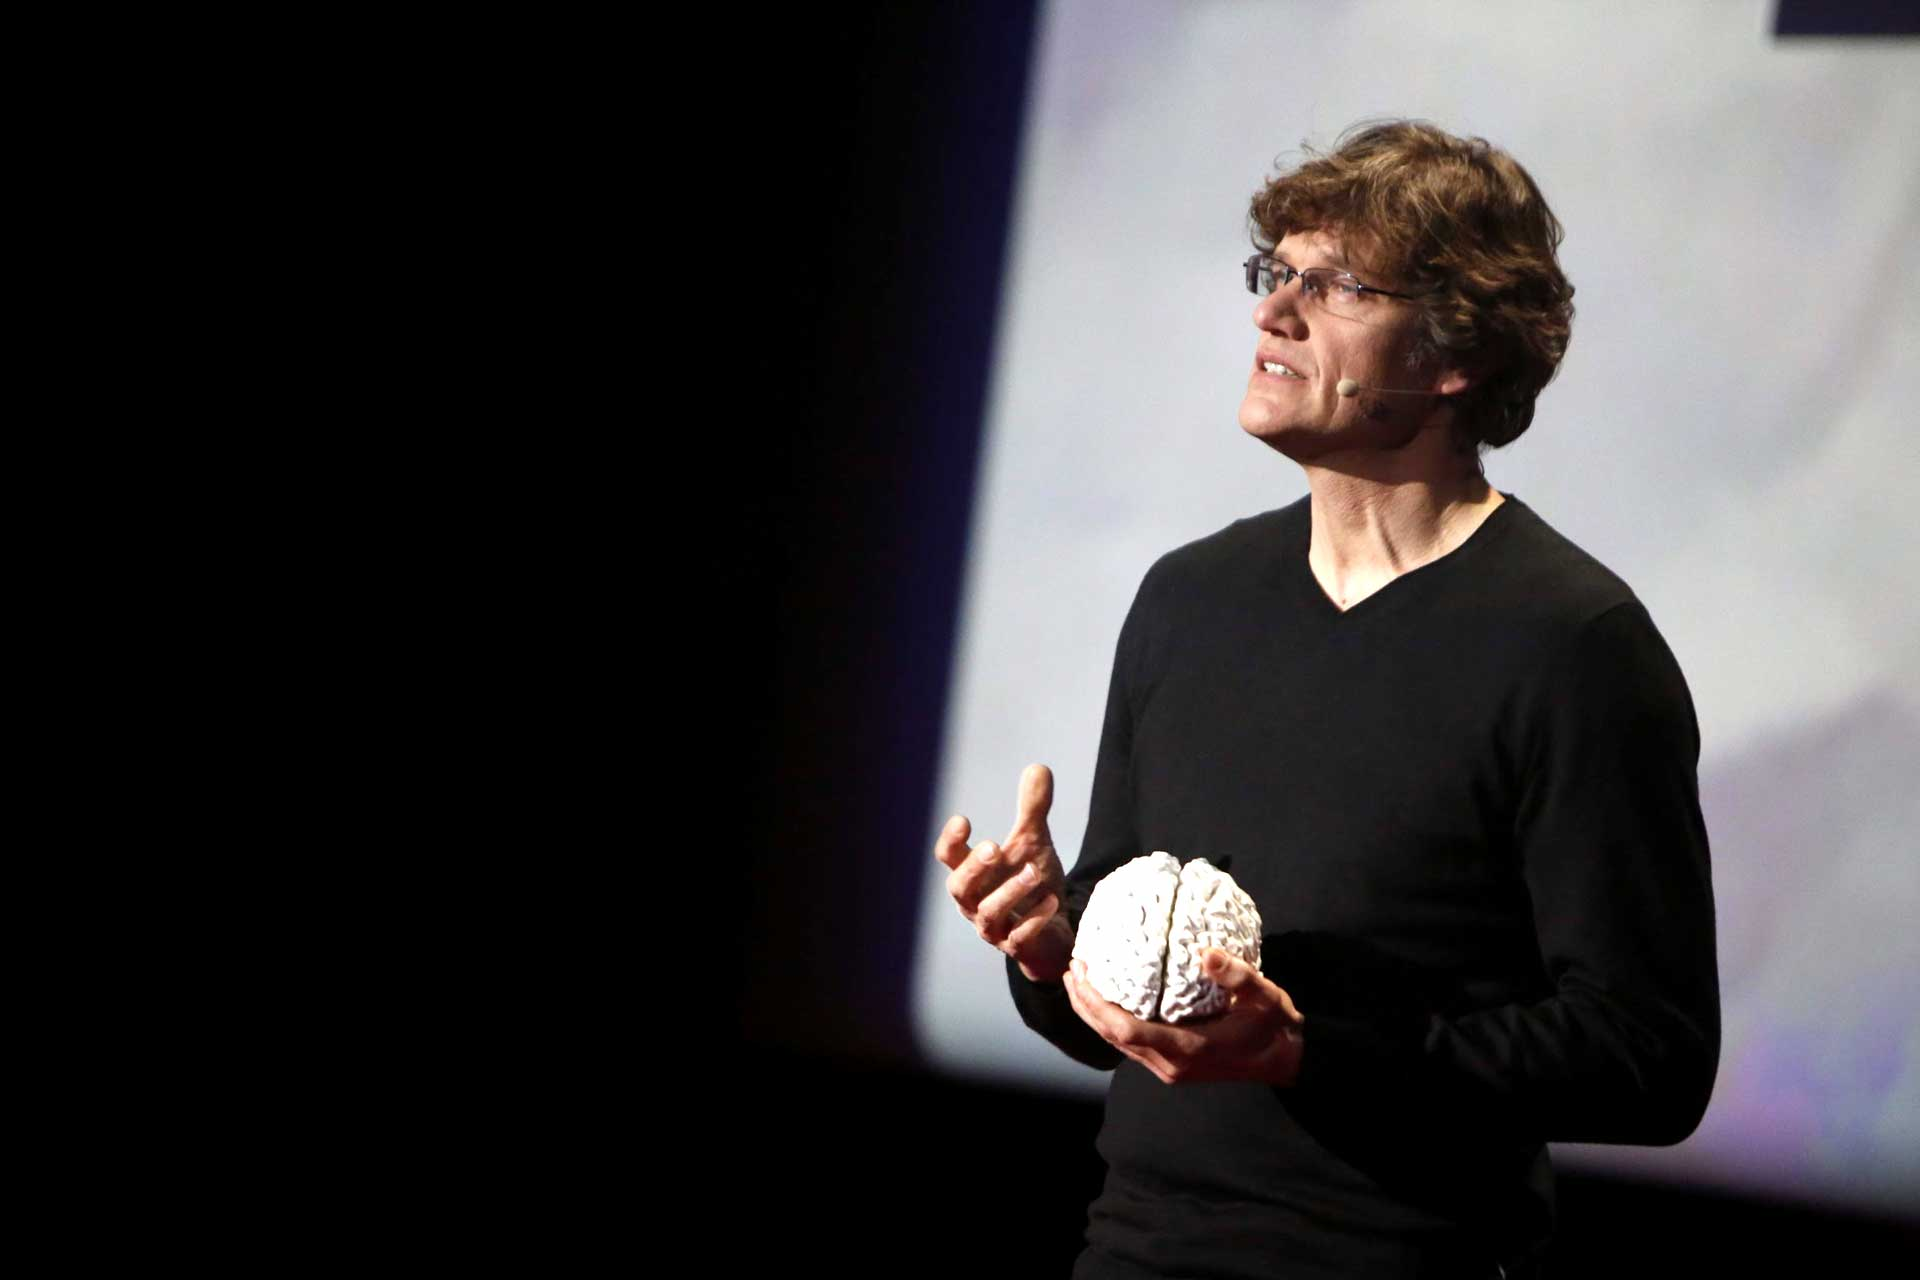 conference-TEDxParis-2013-8.jpg